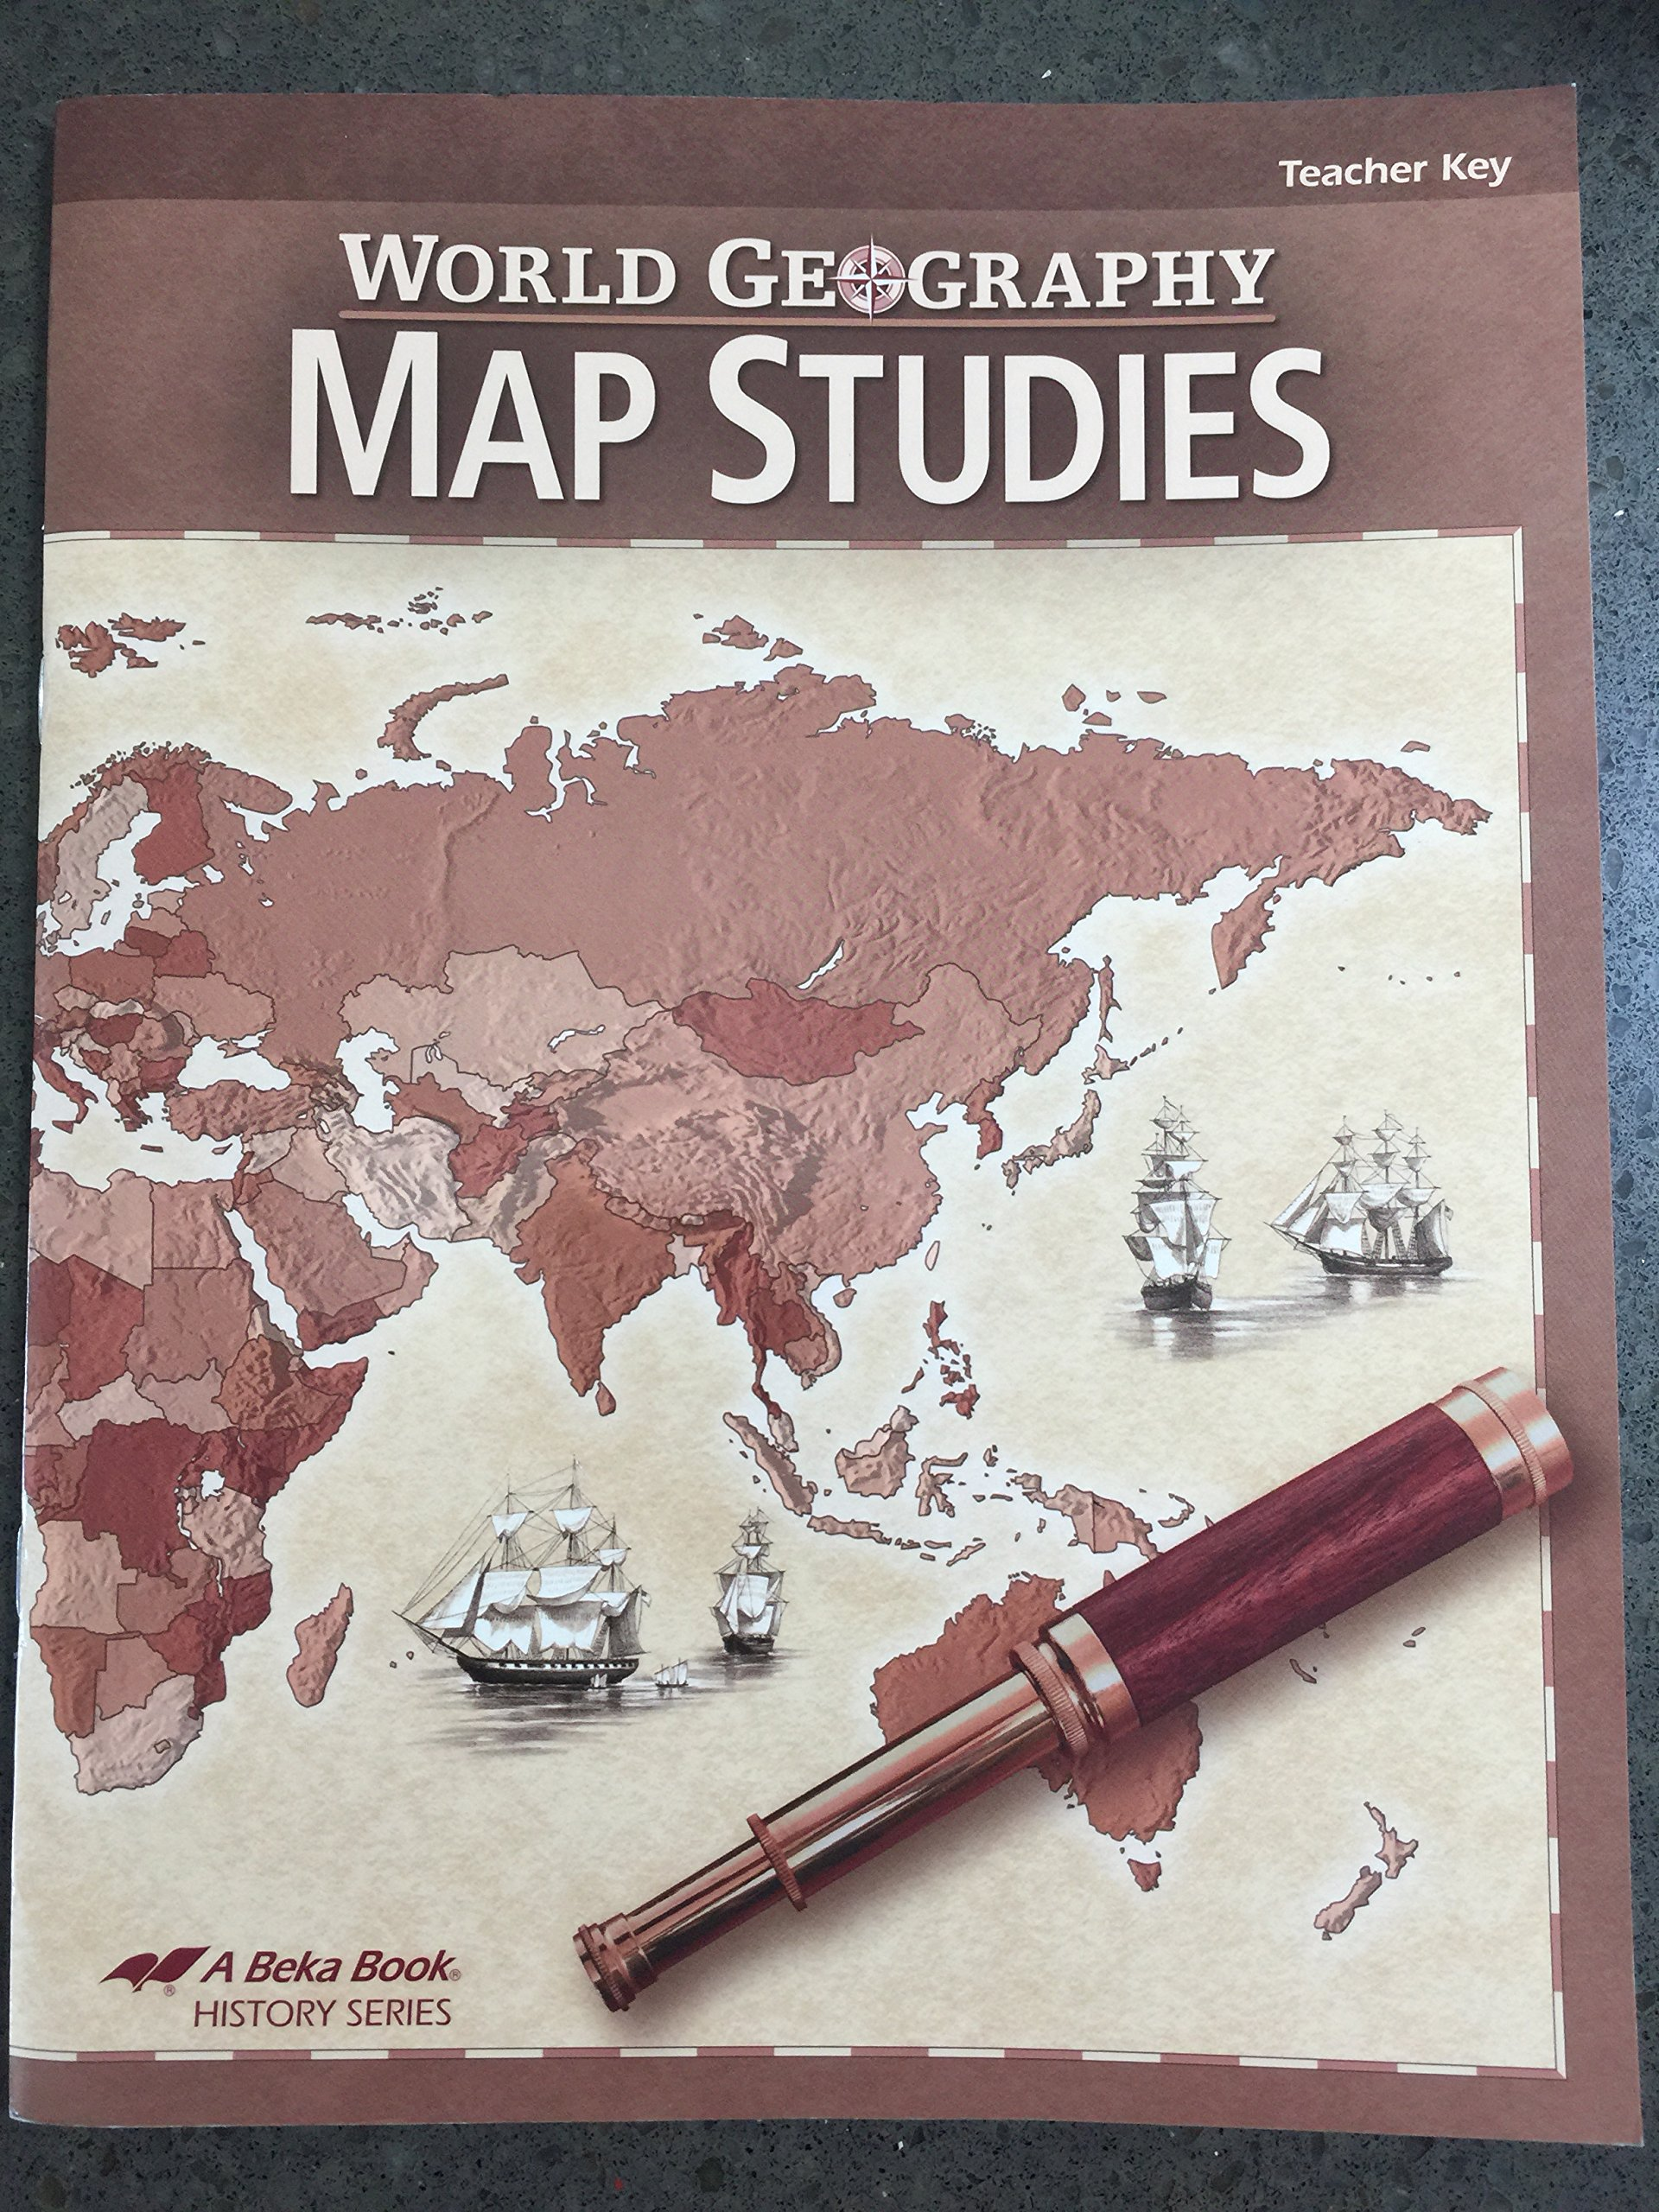 A beka book world geography map studies teacher key ninth grade a beka book world geography map studies teacher key ninth grade pensacola christian college amazon books gumiabroncs Image collections